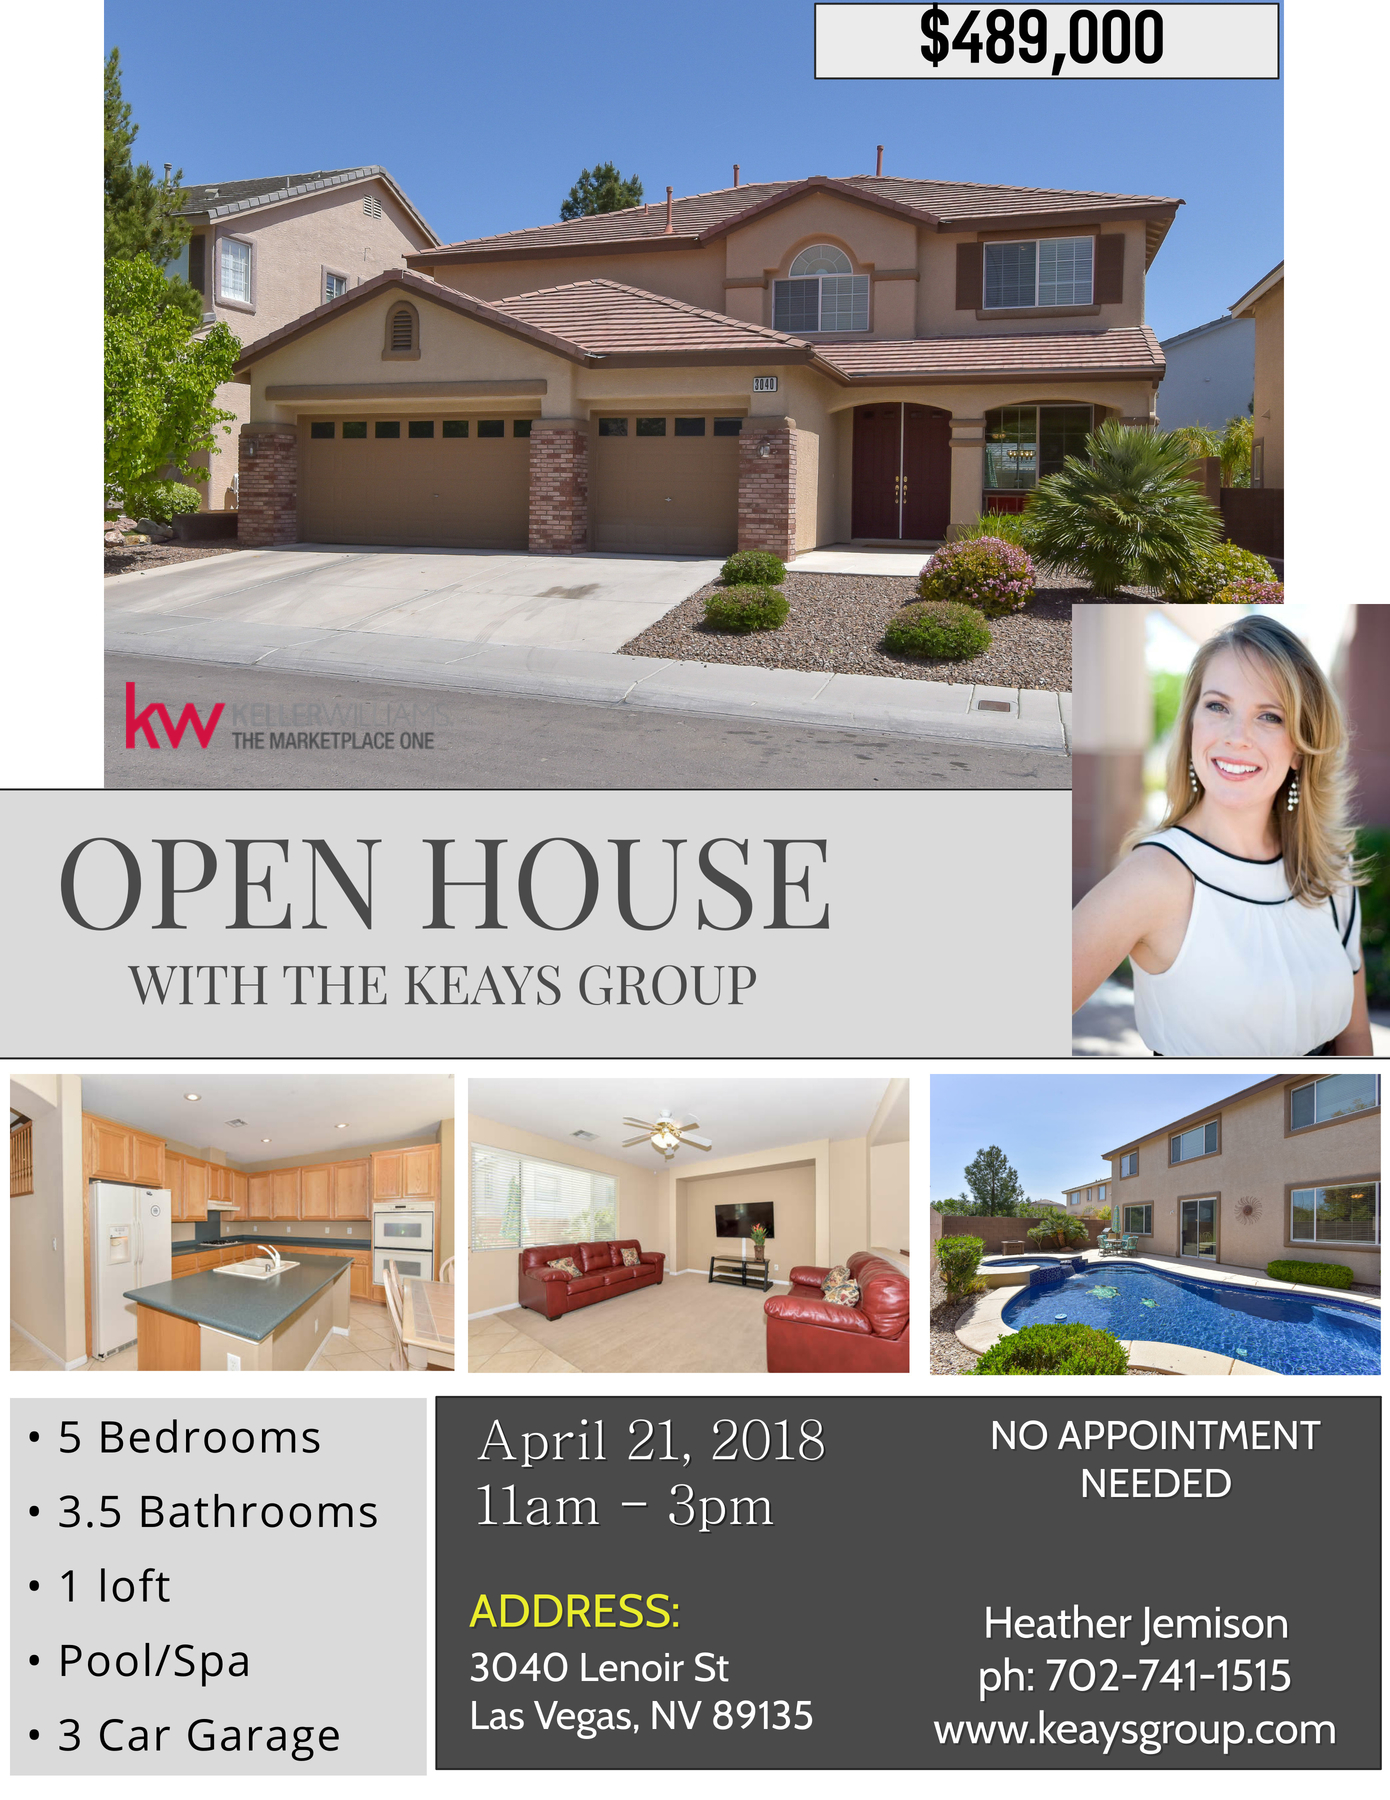 Open House Summerlin 3040 Lenoir St Las Vegas, NV